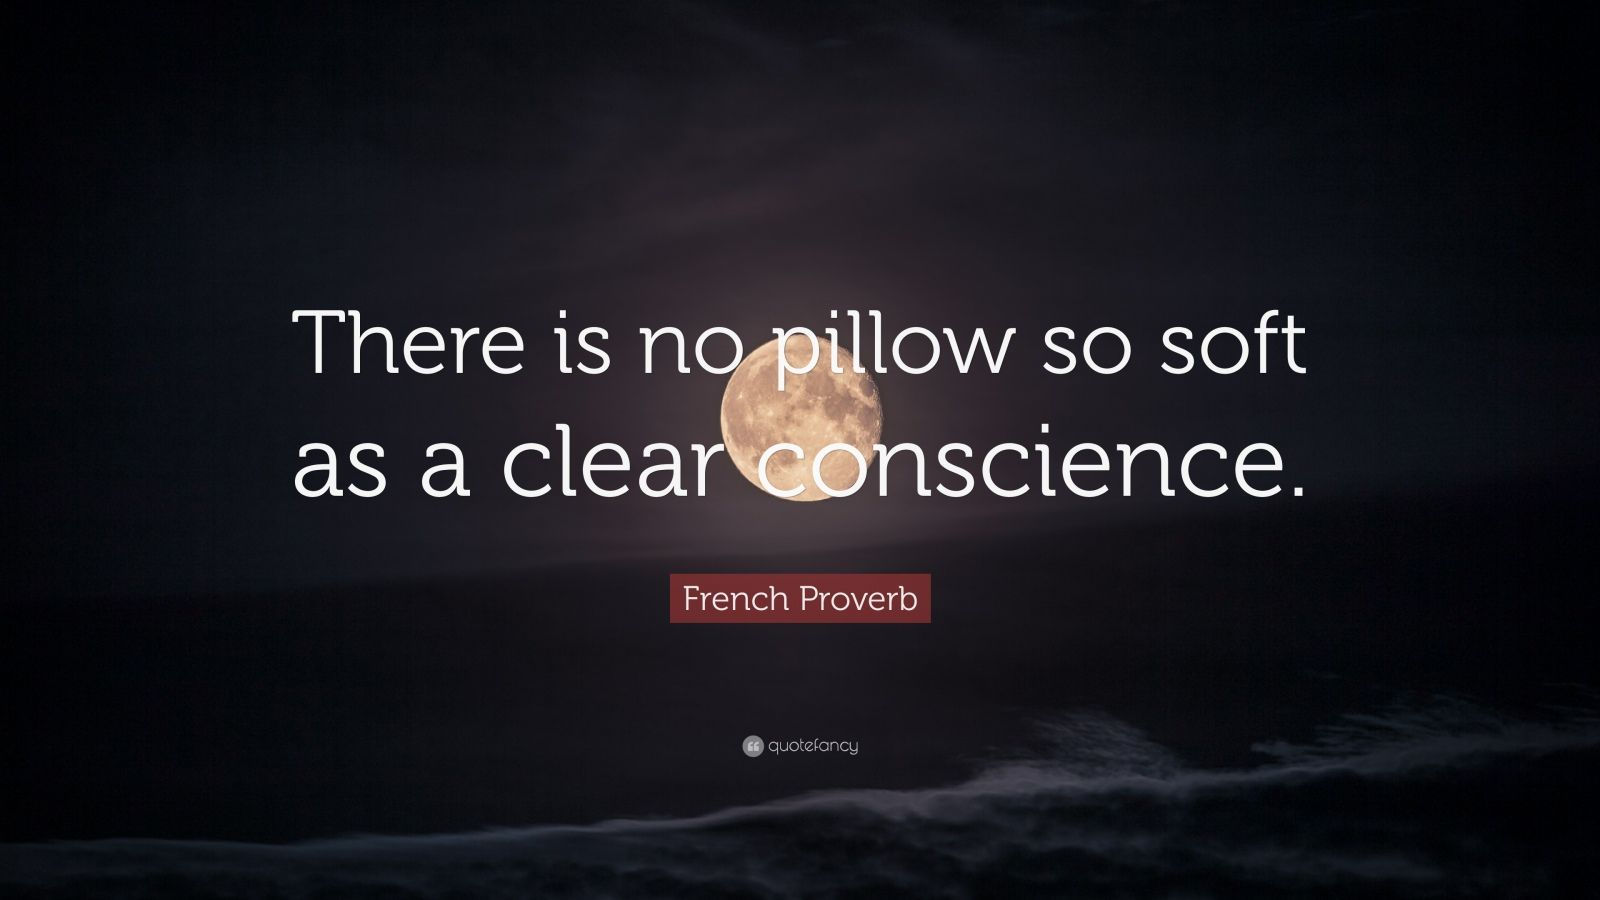 Elon Musk Quotes Wallpapers French Proverb Quote There Is No Pillow So Soft As A